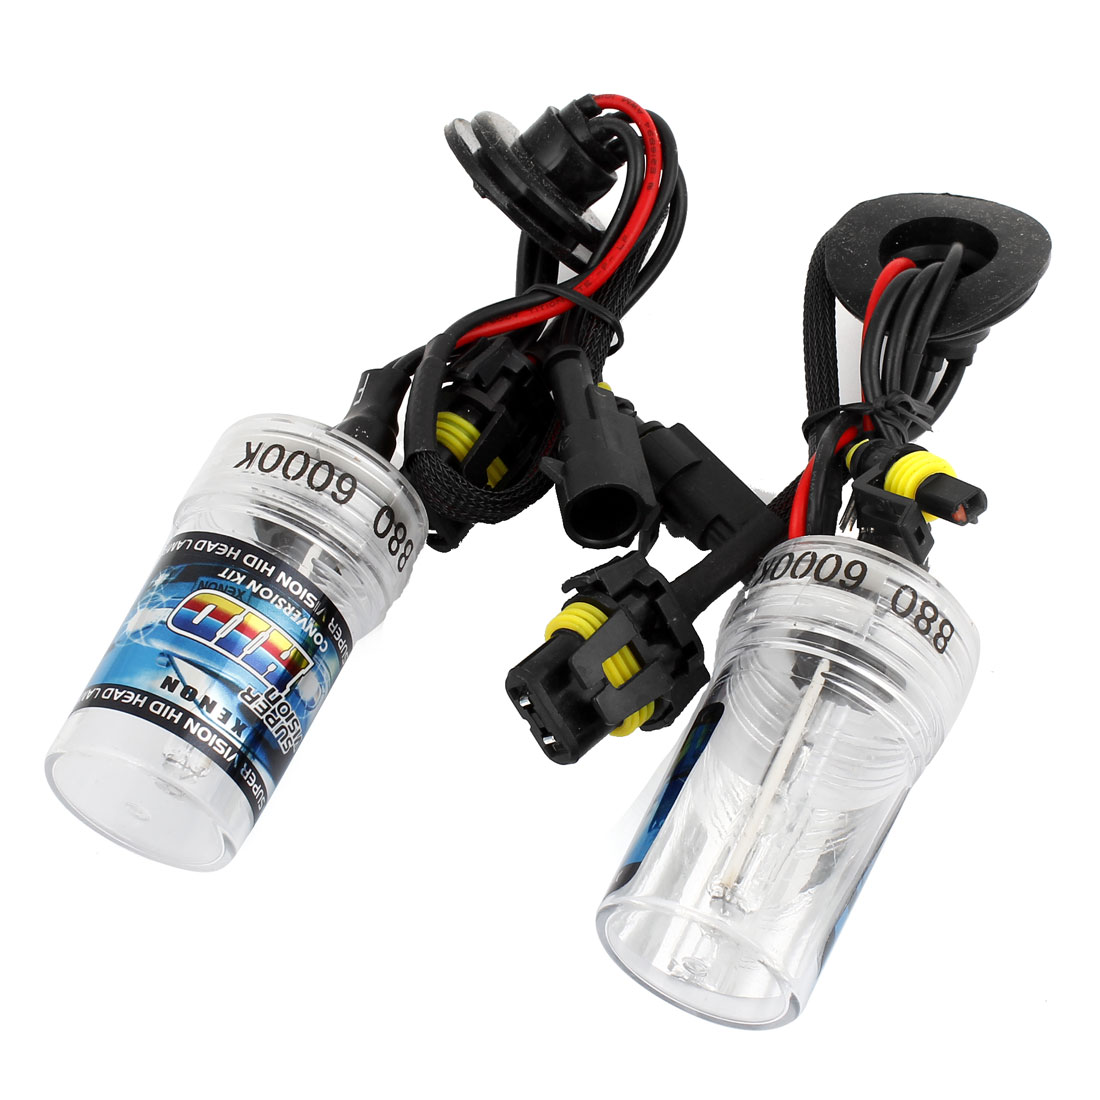 2PCS Automobile Car 880 6000K White Light HID Xenon Headlight Lamp Bulbs